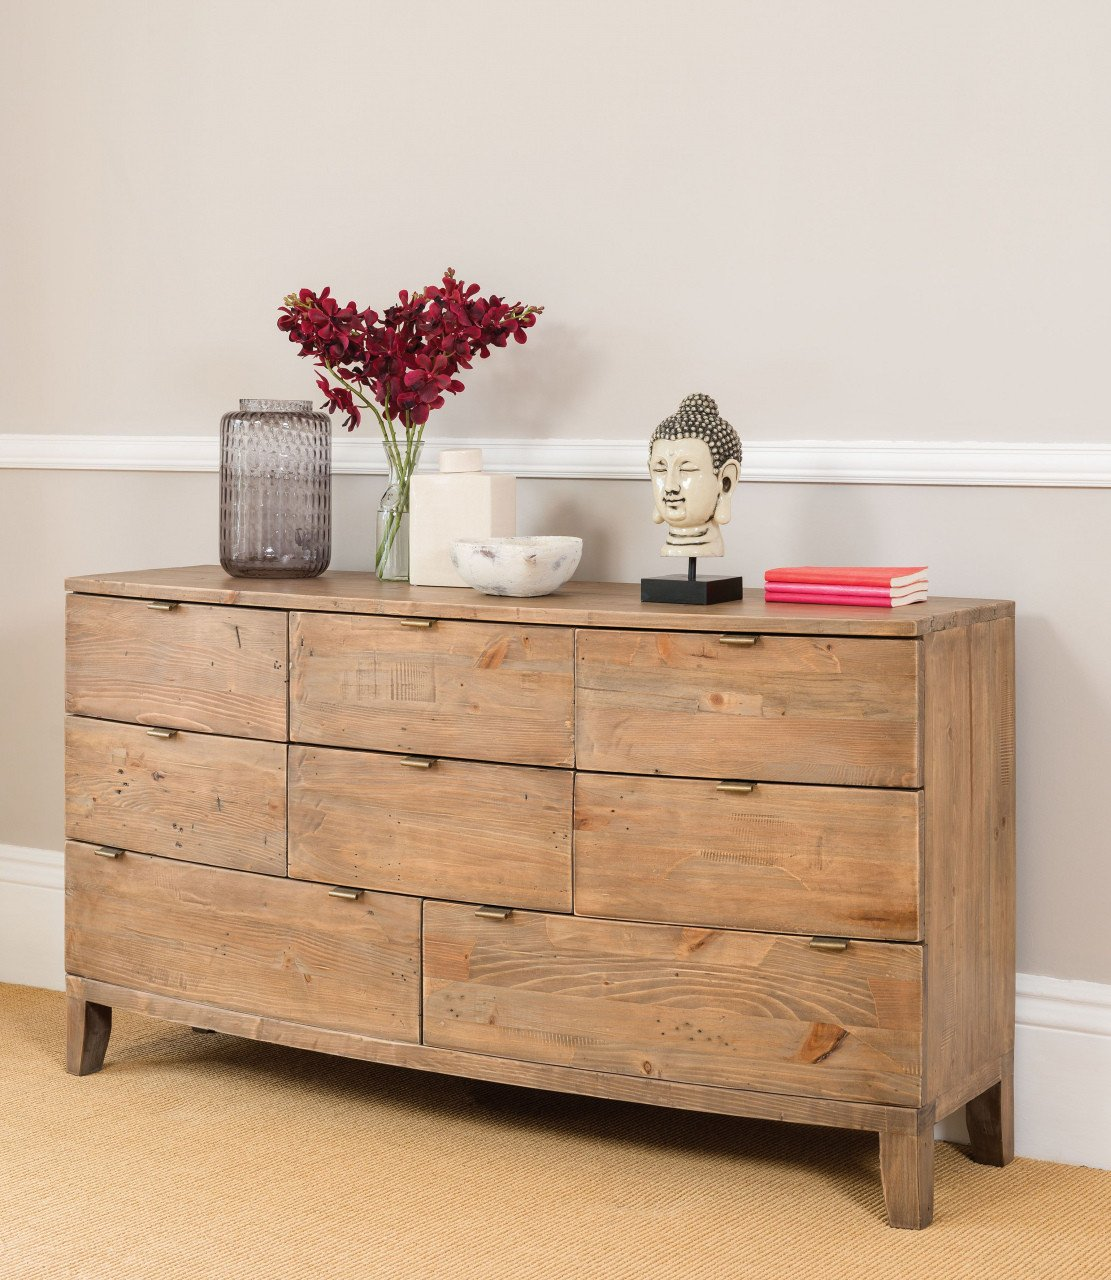 Bedroom Dressers and Chests Beautiful Reclaimed Wood Dresser — Procura Home Blog